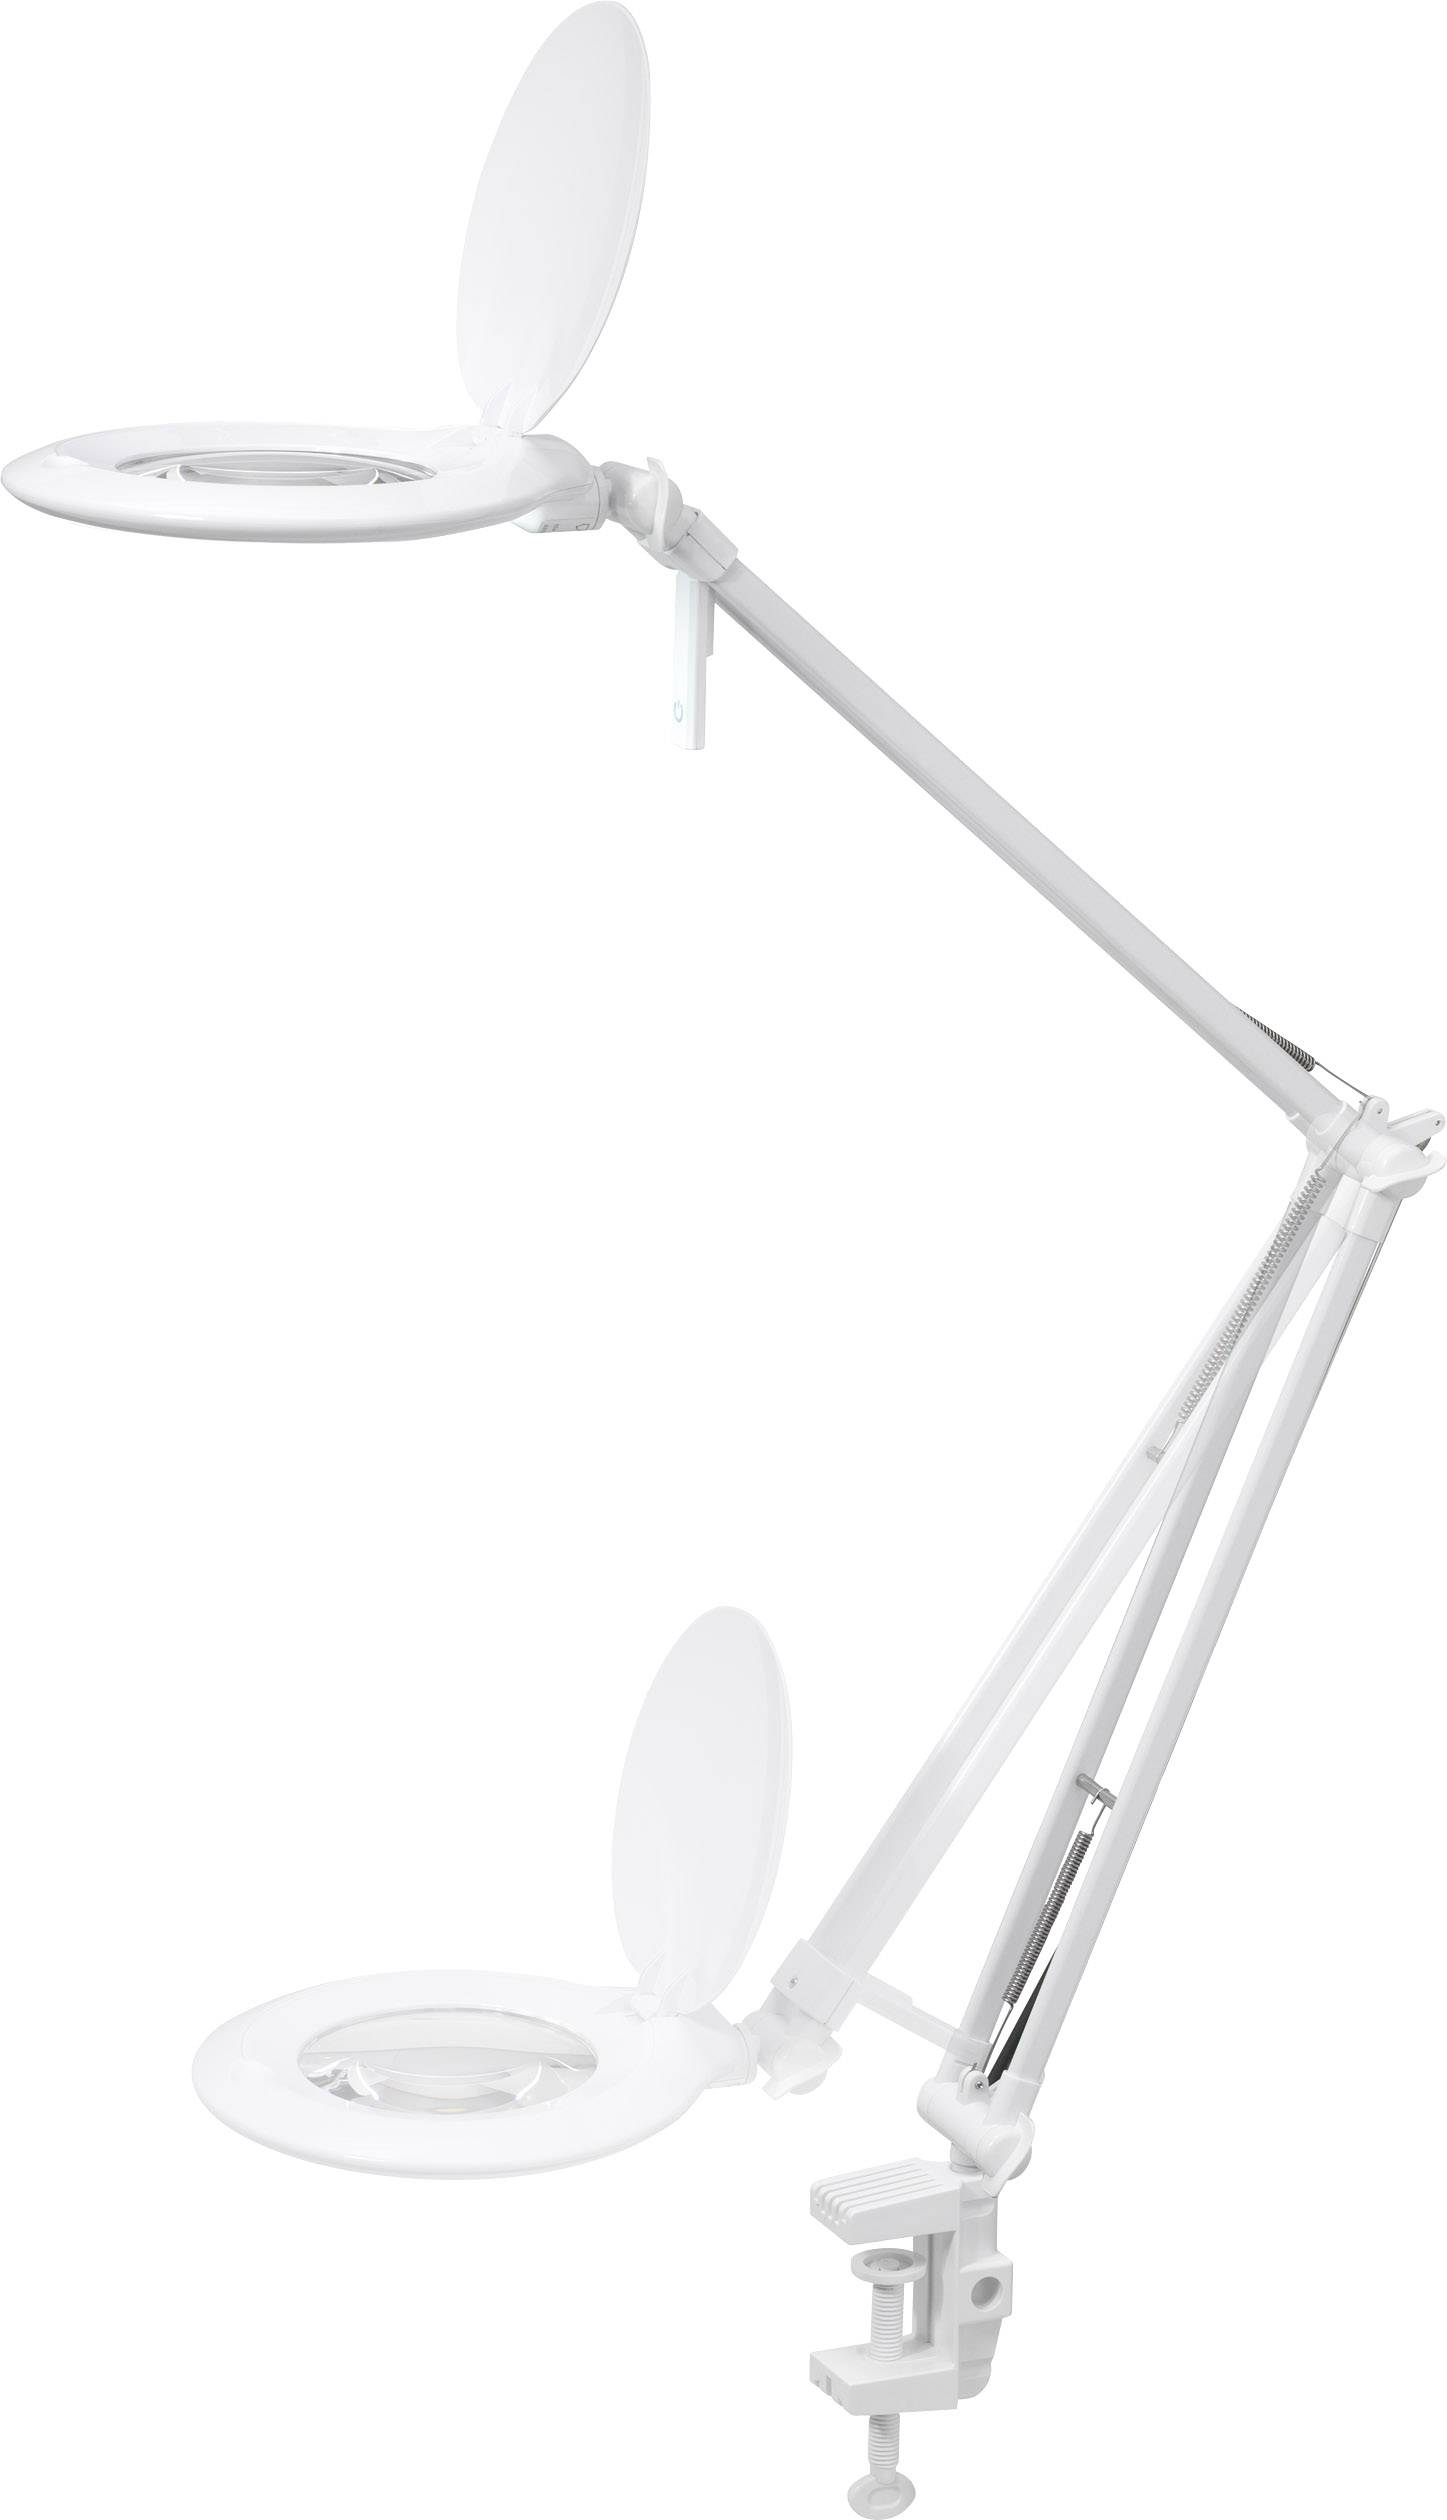 Toolcraft To 5901612 Clamp On Magnifying Lamp 110 Mm 7 W Lupenleuchte 110 Mm Dimmbar Conrad Com